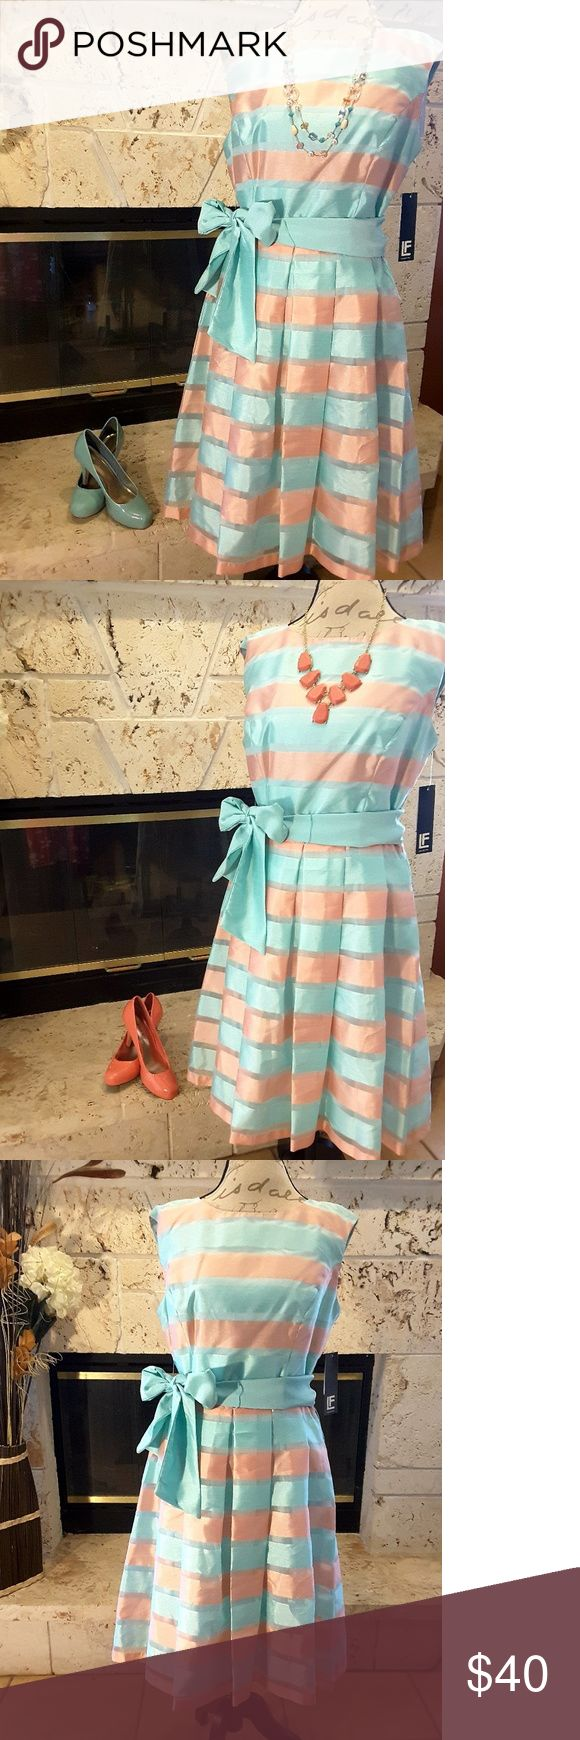 """Leslie Fay Striped Fit-and-Flare Dress Leslie Fay Striped Fit-and-Flare Dress ▪Size 12 ▪ {Bust: 20""""} ▪ {Waist: 16""""} ▪ {Shoulder to hem: 40""""} ▪Mint and peach colored dress▪ Solid mint sash included ▪Striped organza overlay ▪ Dress 100% Polyester ▪ Lining 100% Acetate ▪One belt loop torn as pictured, but can be fixed or hidden ▪Due to lighting, actual mint color resembles last picture ▪NWT Leslie Fay Dresses"""